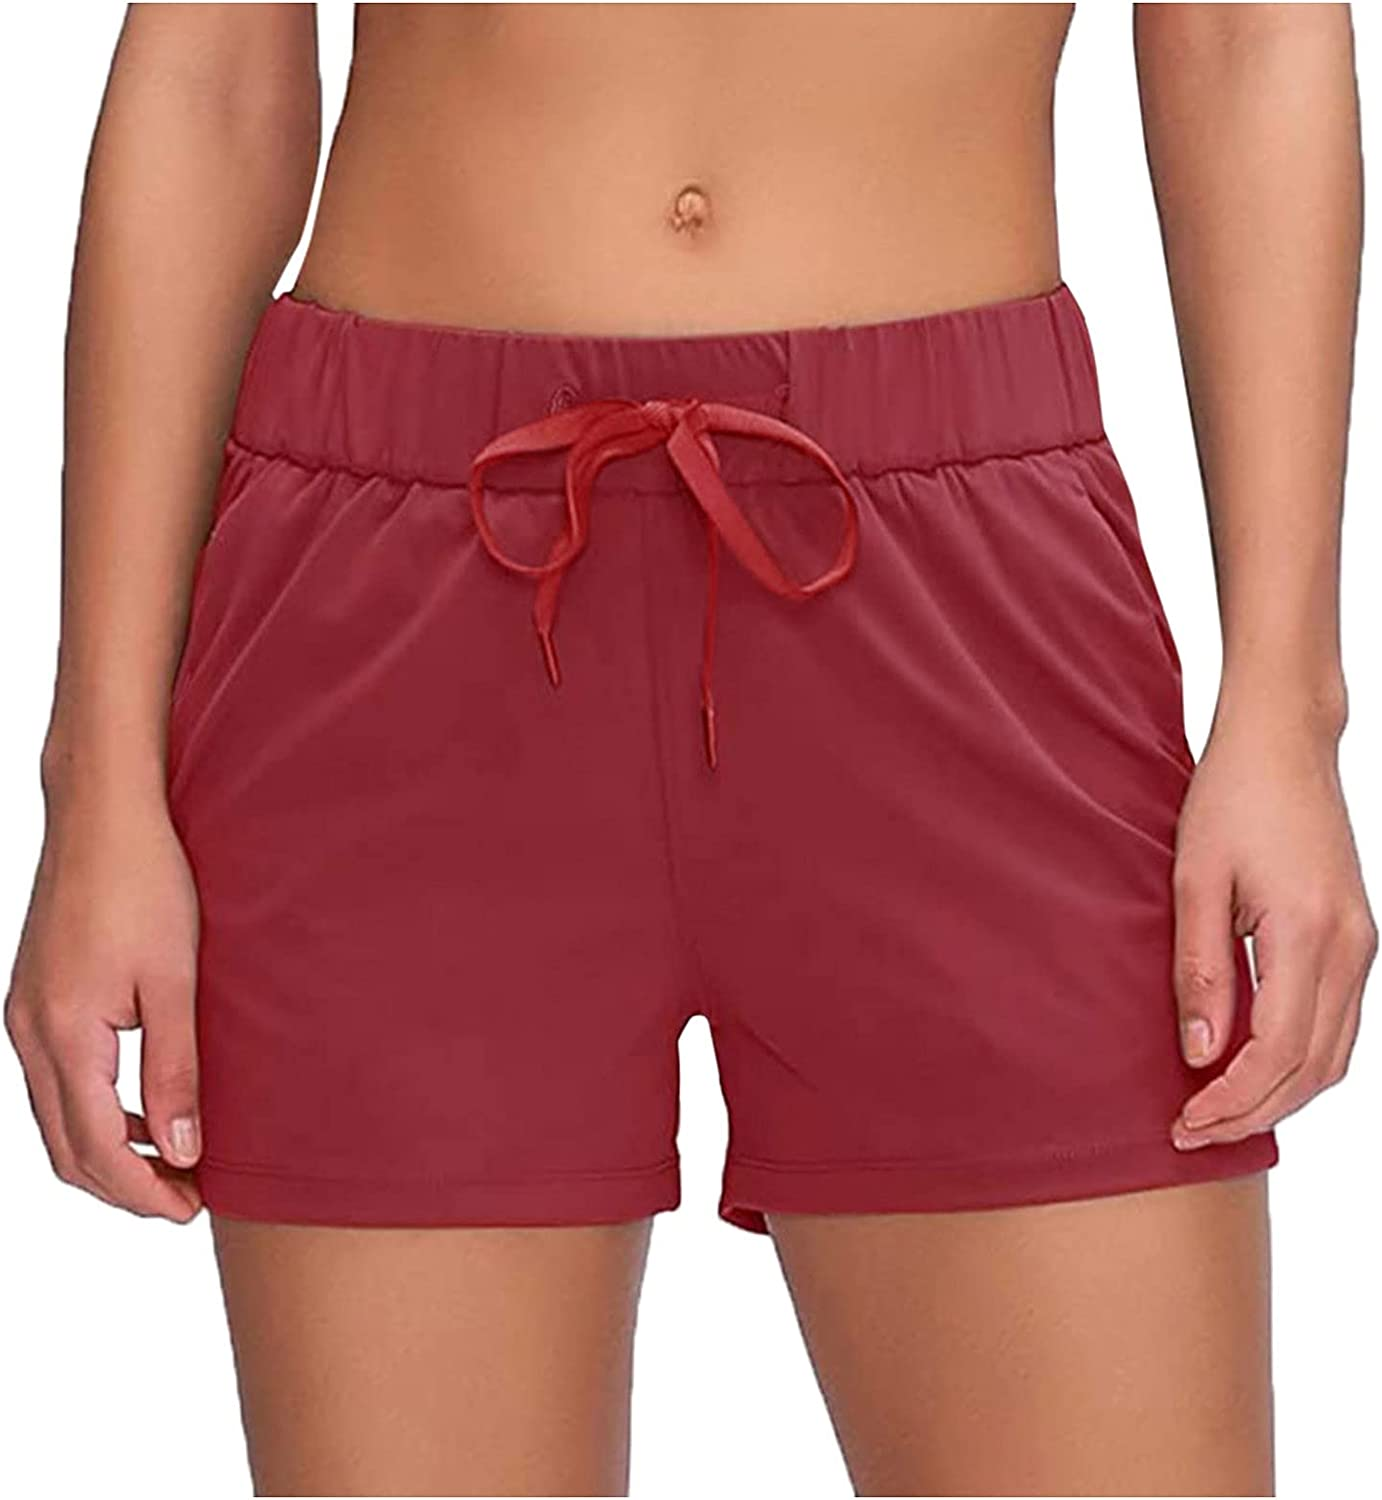 SUNTIN 2021 Womens Running Shorts Sport Gym Athletic Active Workout Shorts with Pockets